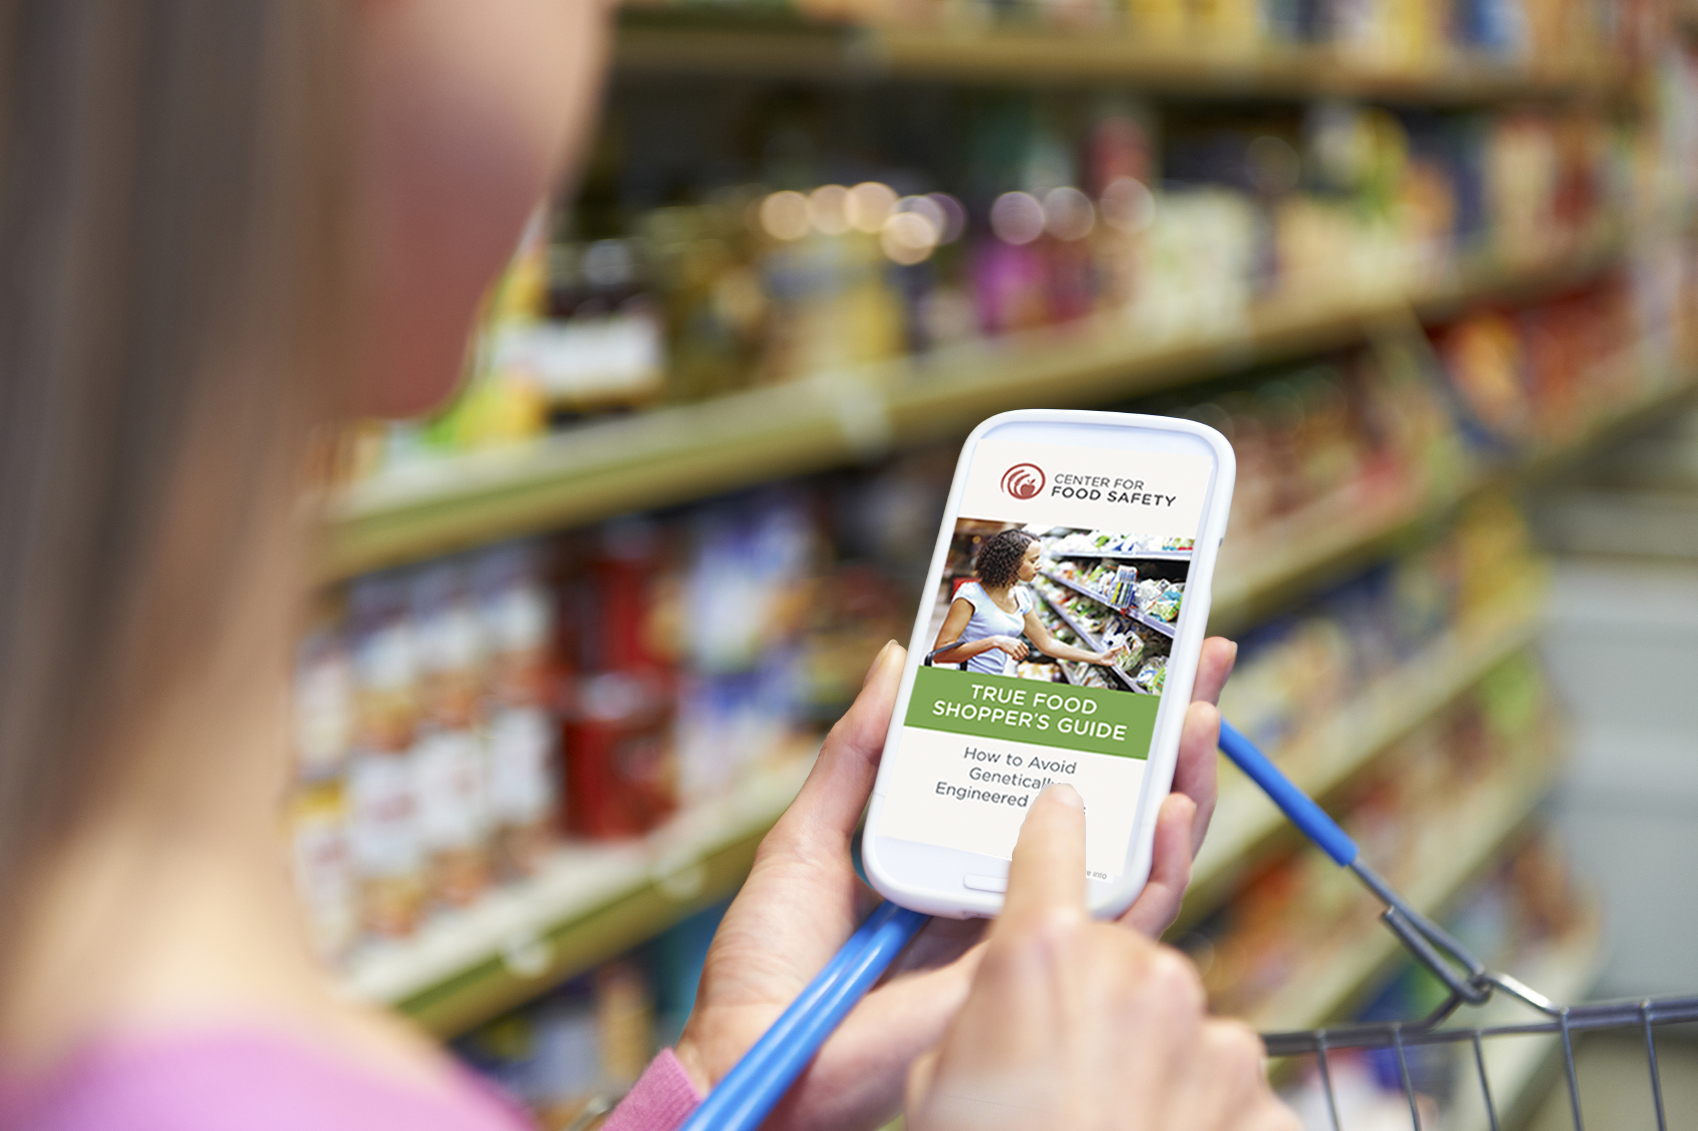 Get your Shoppers Guide to Avoiding GE Food today